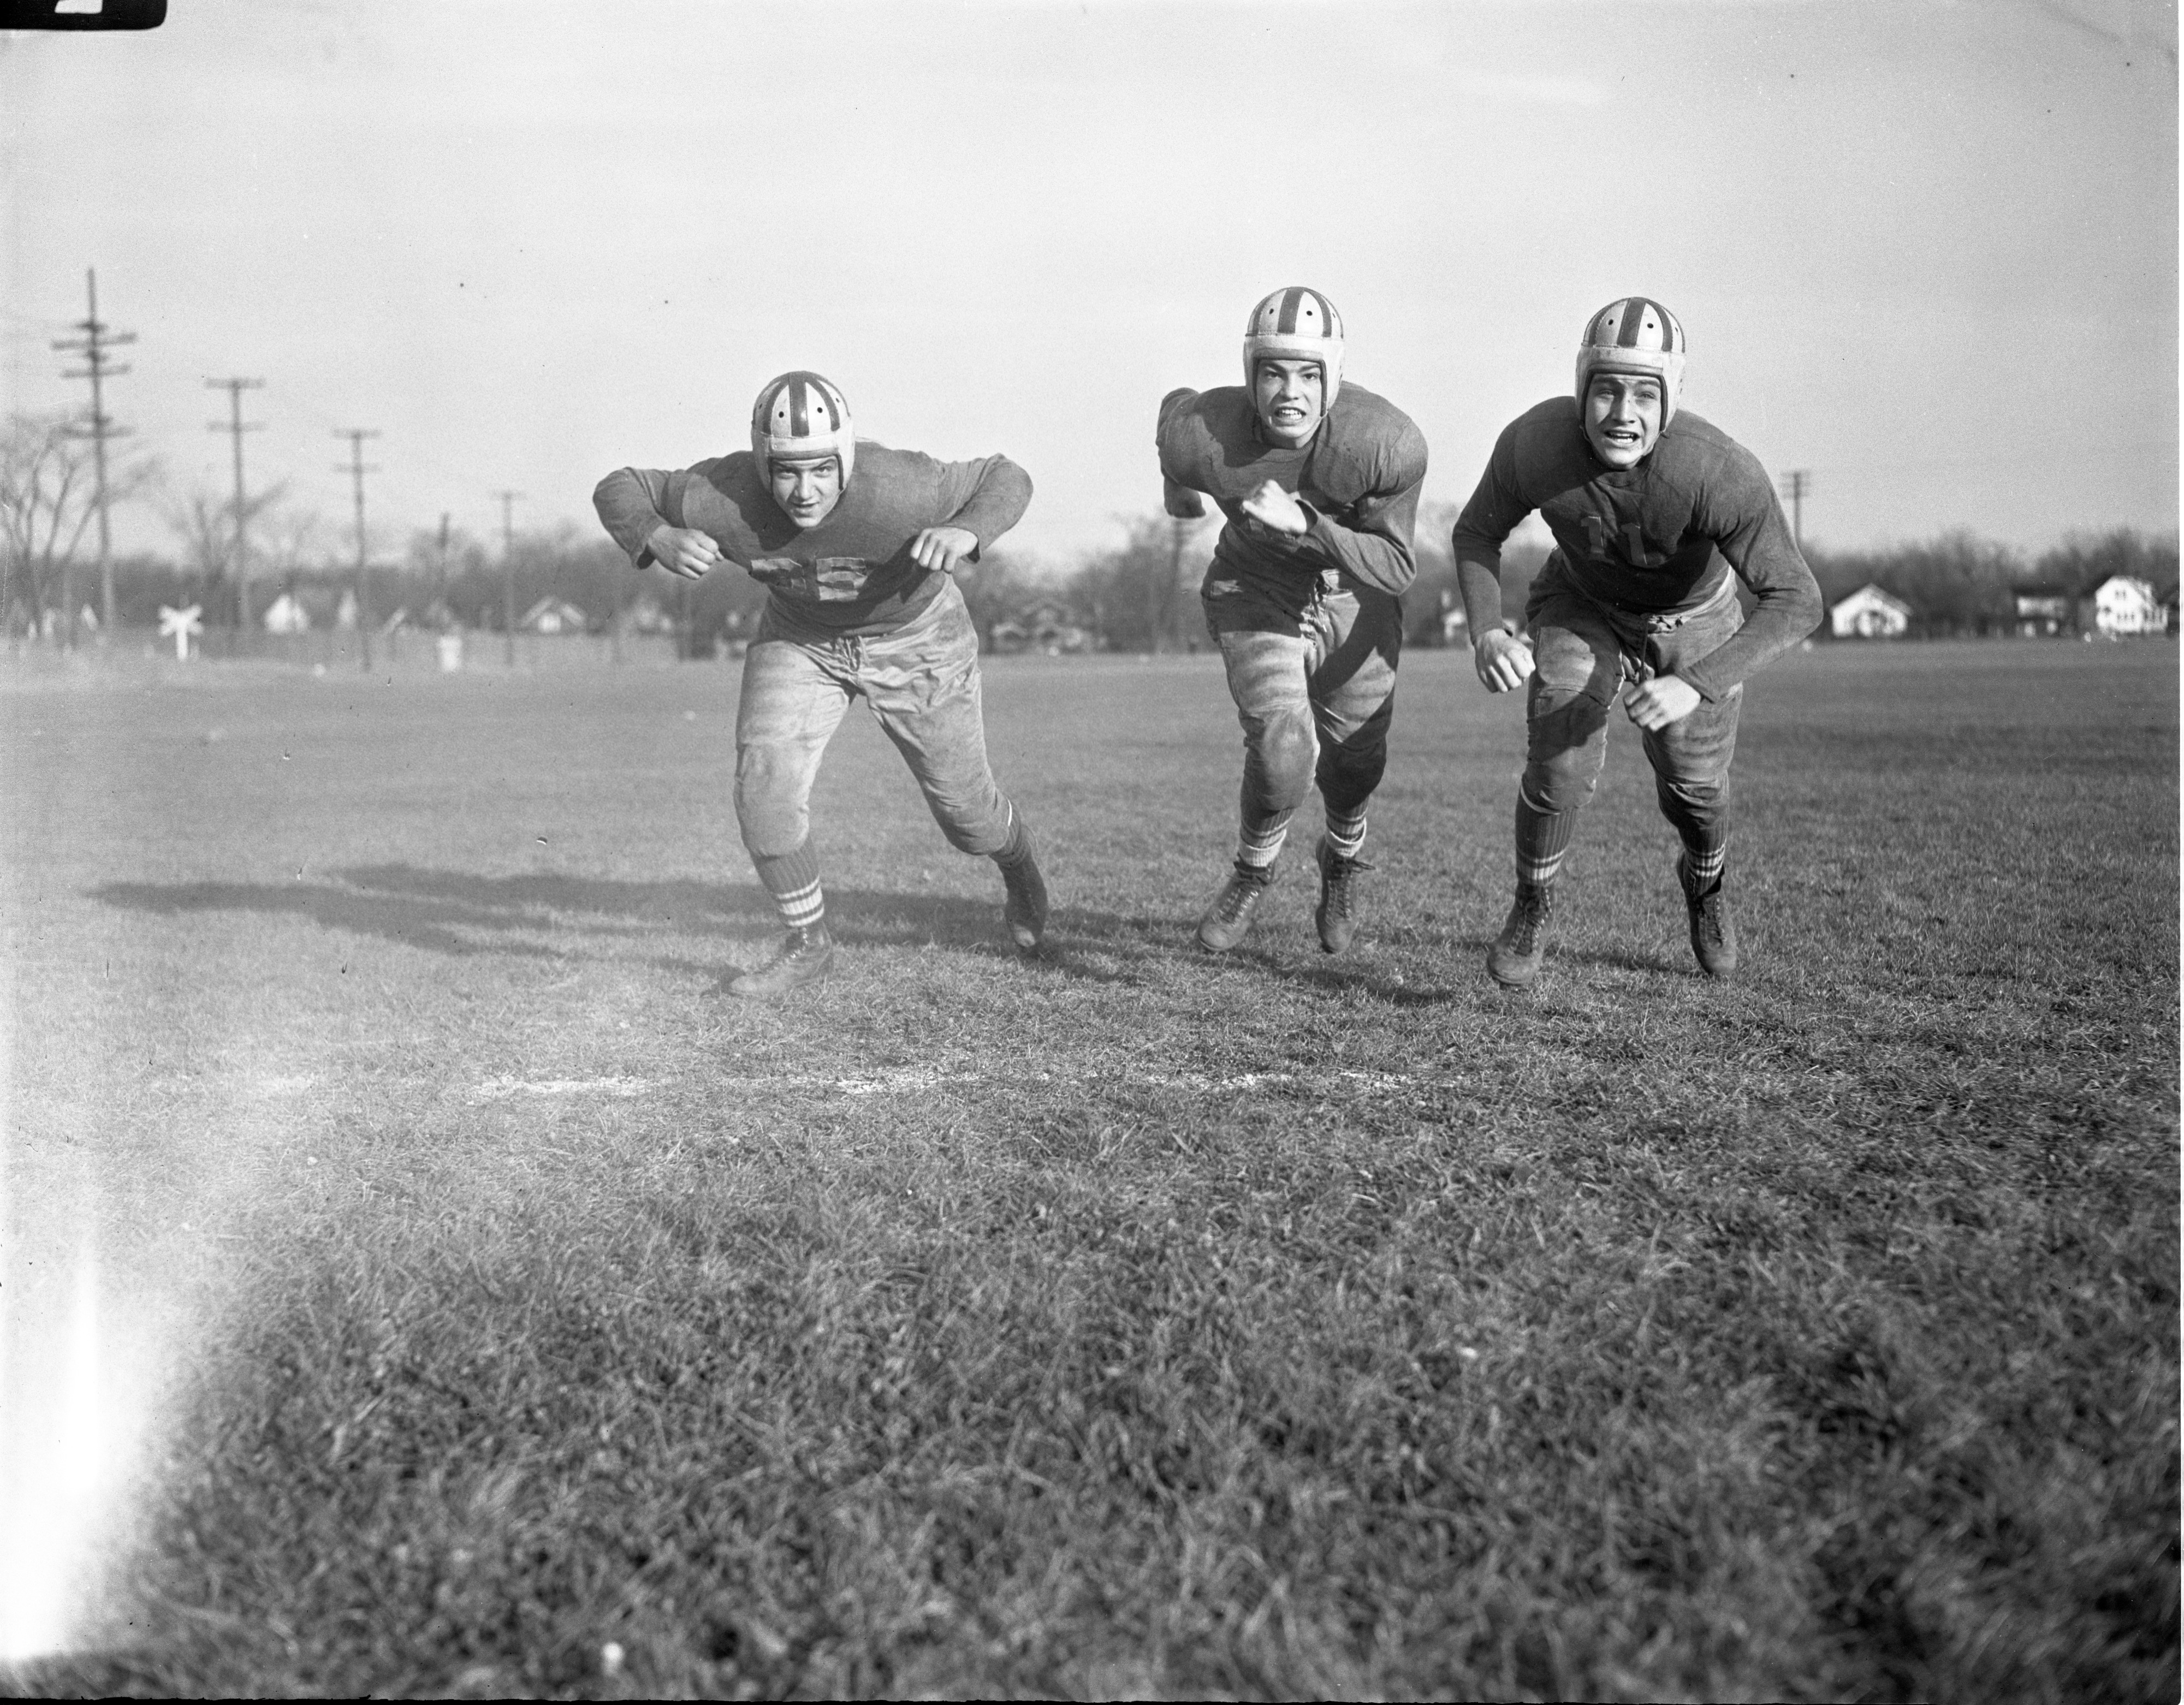 Jack Spencer, Jim Gentry, & Gary Agnew, University High School Football Team, November 1945 image